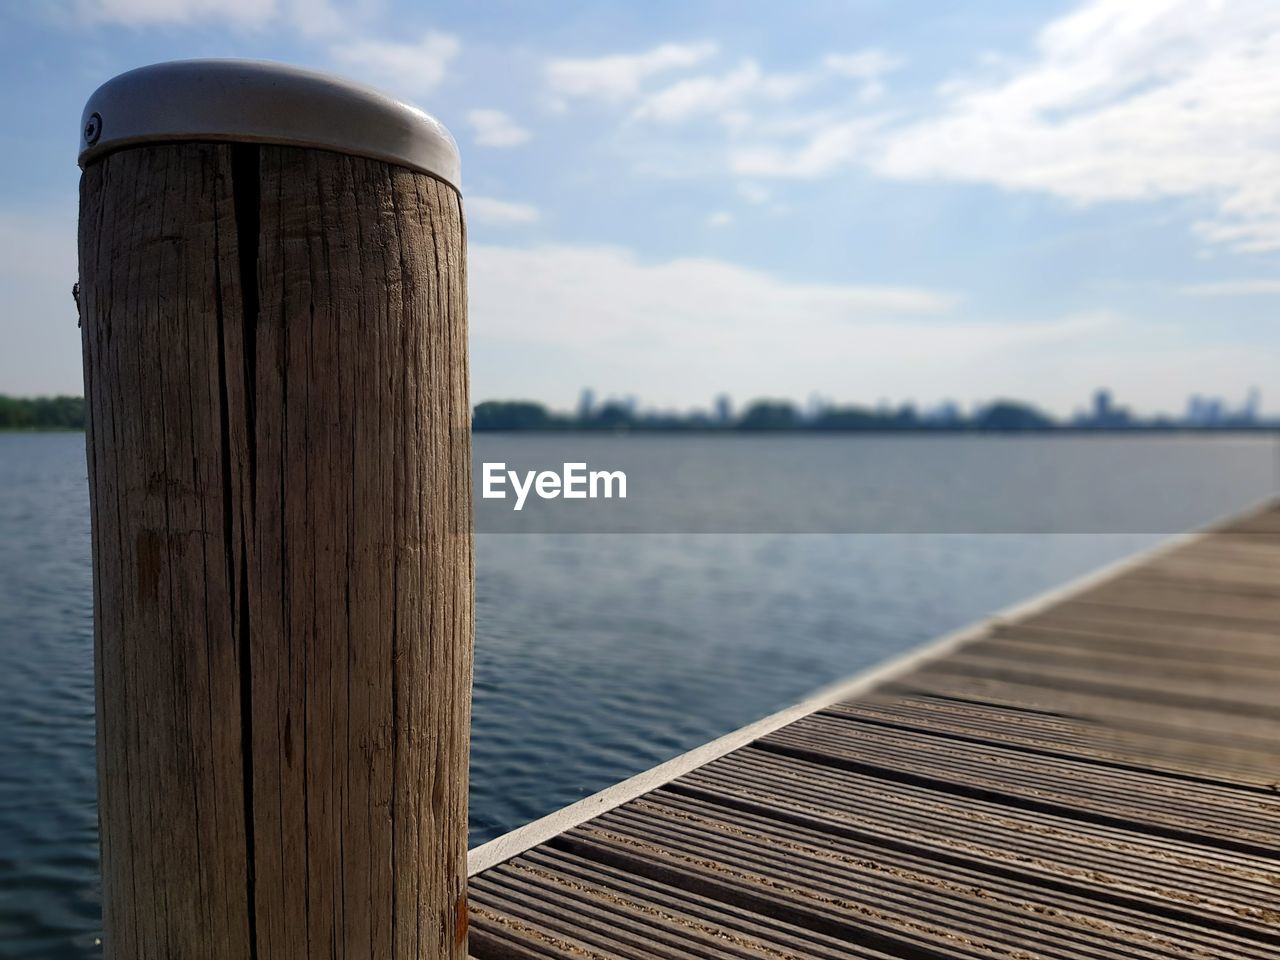 water, wood - material, sky, lake, focus on foreground, post, no people, nature, wooden post, day, cloud - sky, tranquility, tranquil scene, pier, outdoors, scenics - nature, beauty in nature, non-urban scene, close-up